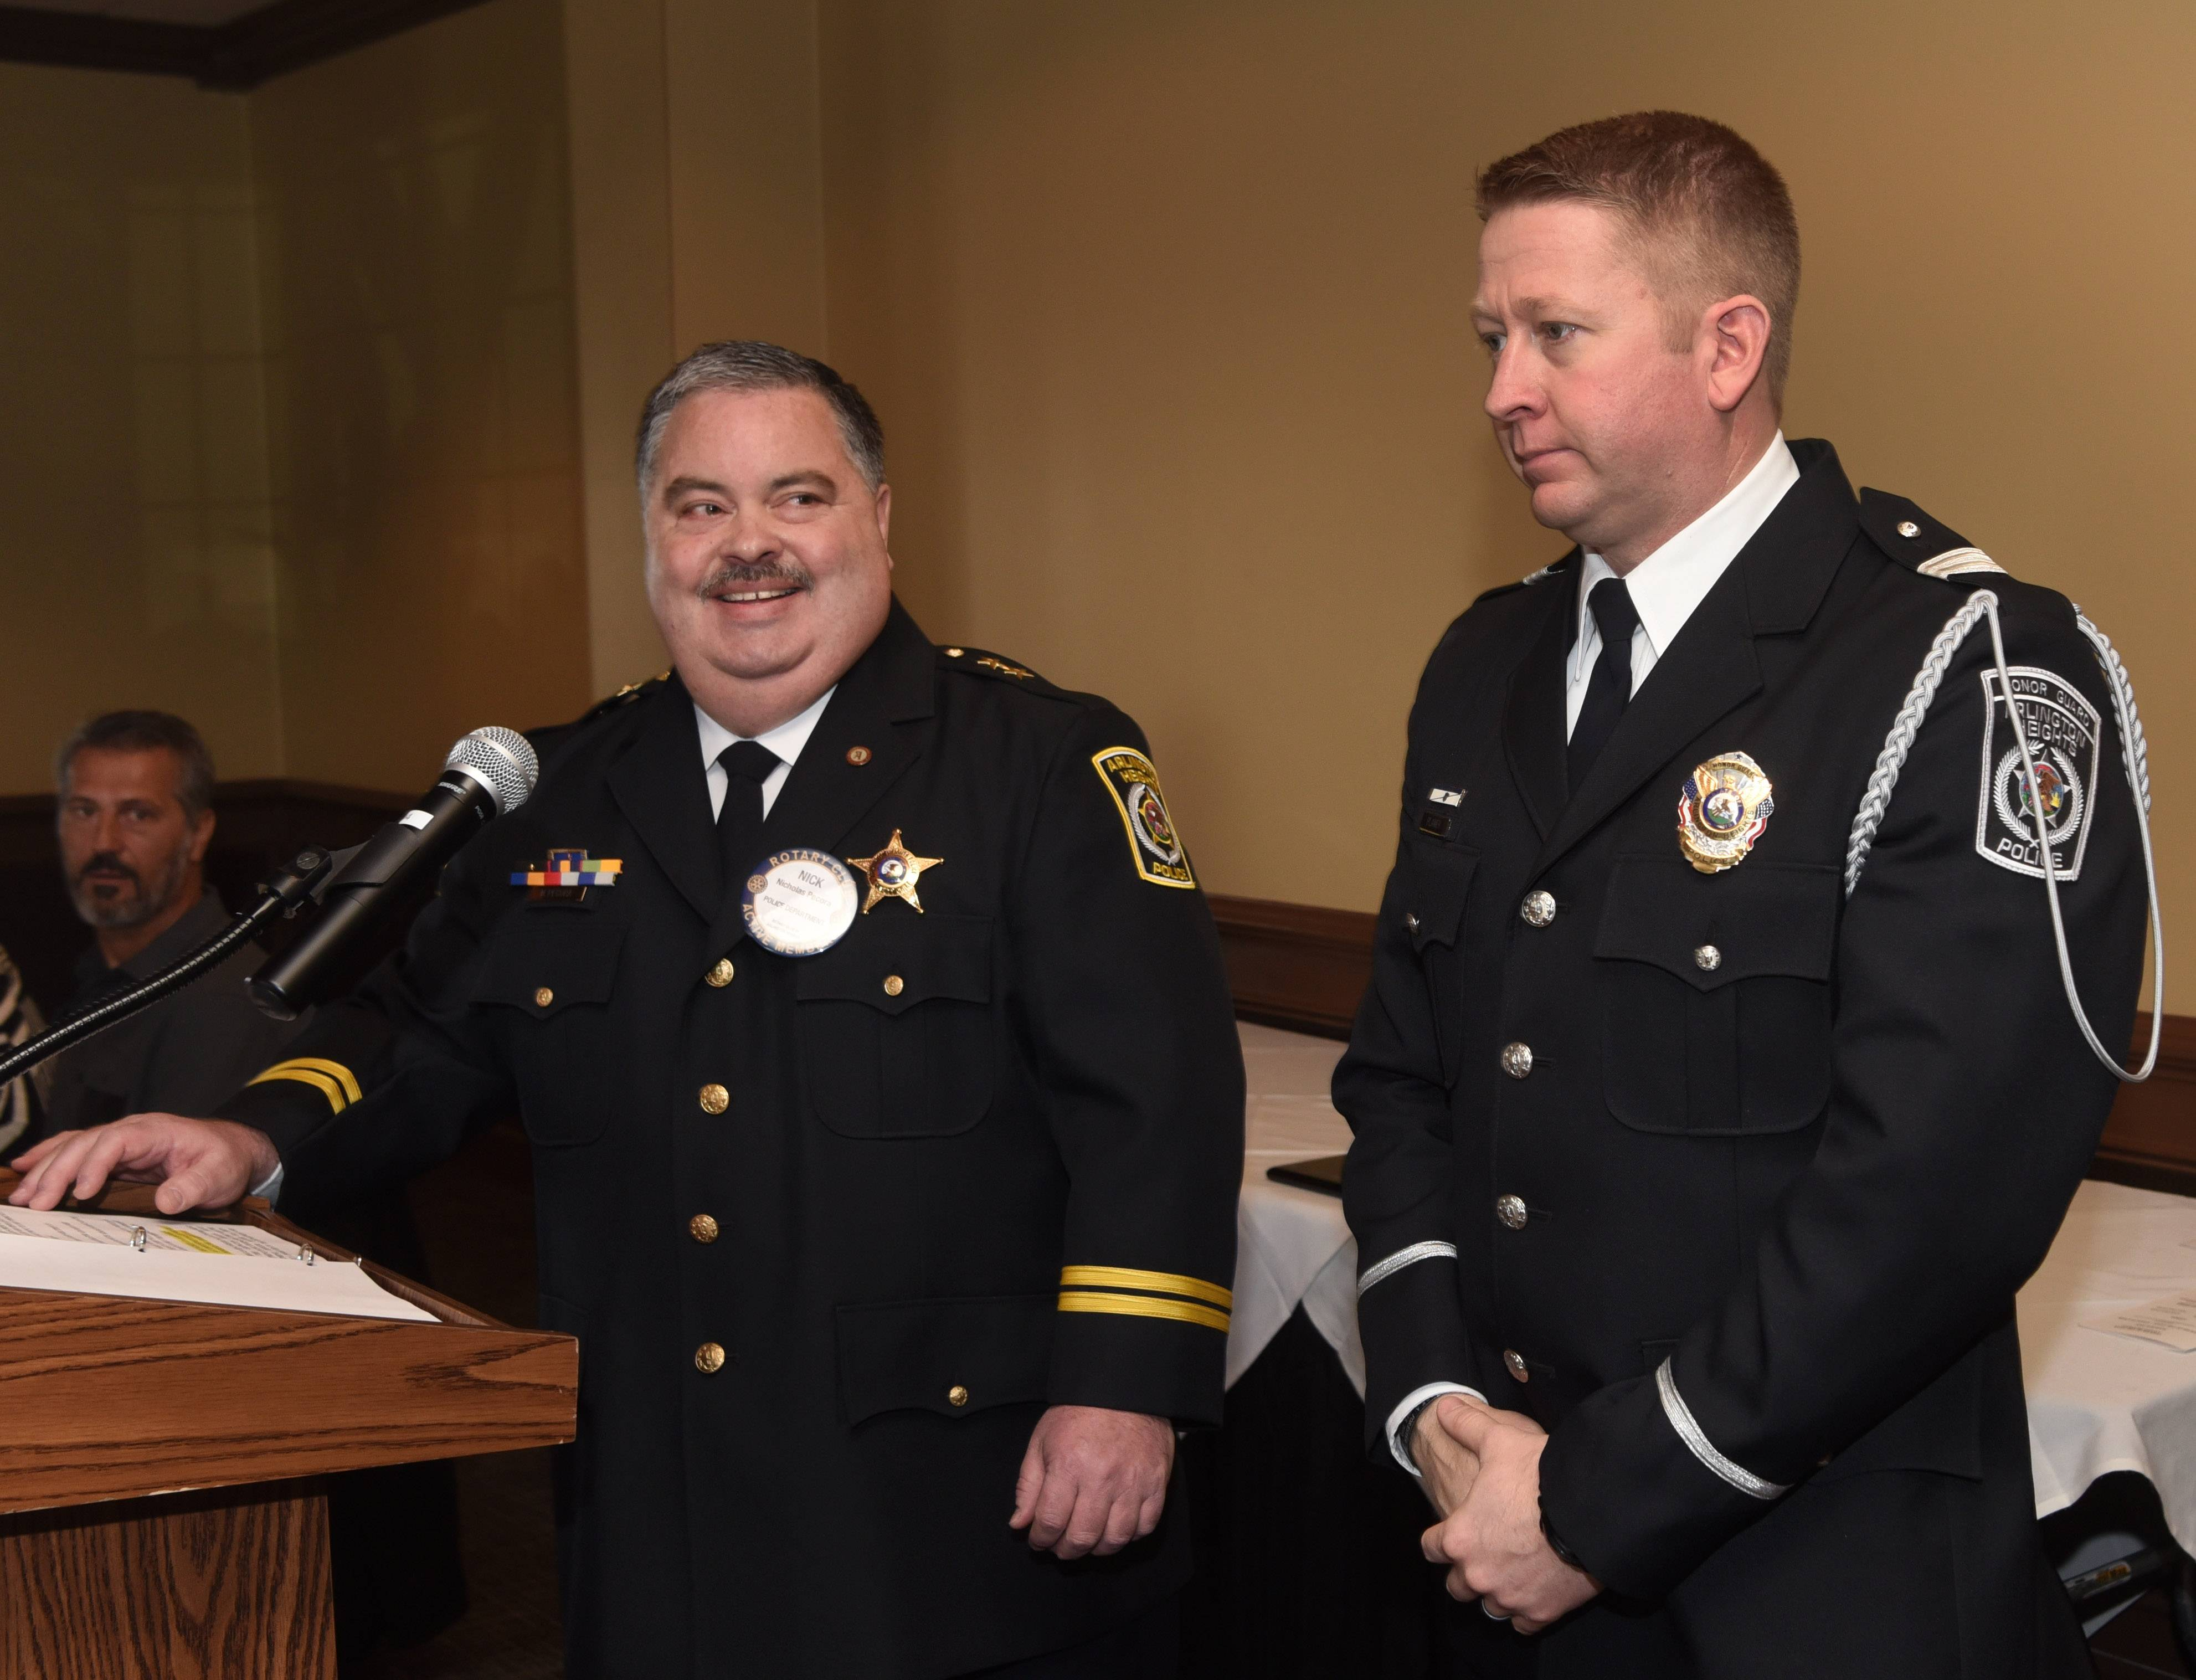 Arlington Heights Deputy Police Chief Nick Pecora, left, said Adam Plawer put his safety at risk when he rescued an unconscious driver from a burning vehicle last summer. Plawer on Thursday won the department's L.W. Calderwood Officer of the Year Award.